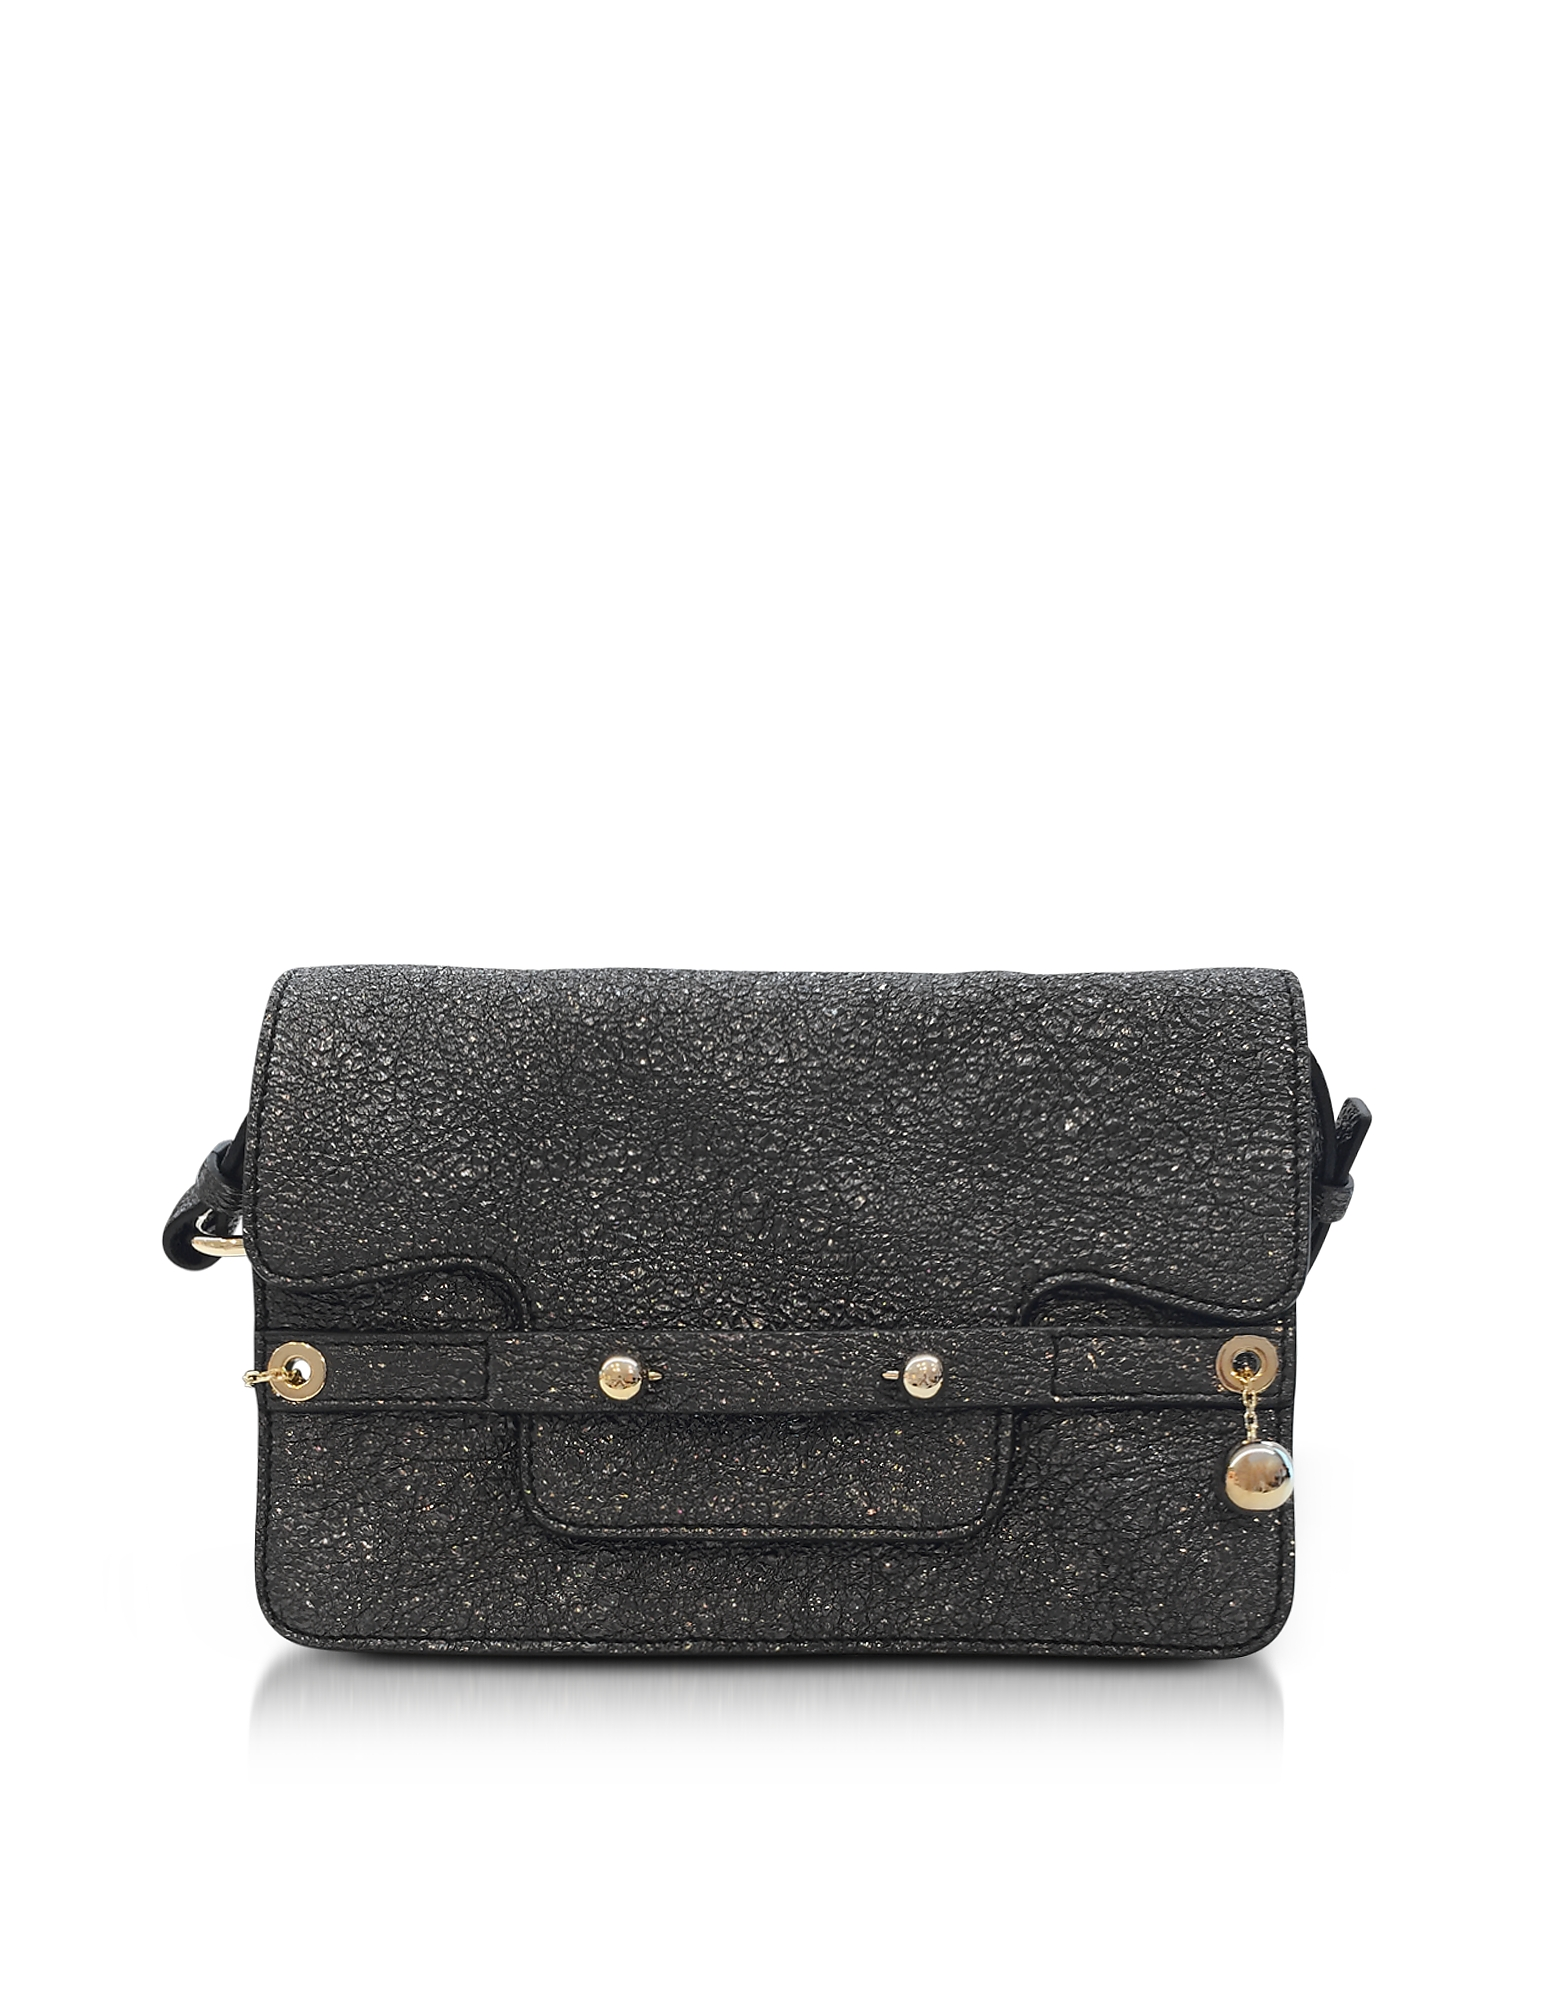 RED Valentino Designer Handbags, Gunmetal Crackled Metallic Leather Flap Top Crossbody Bag